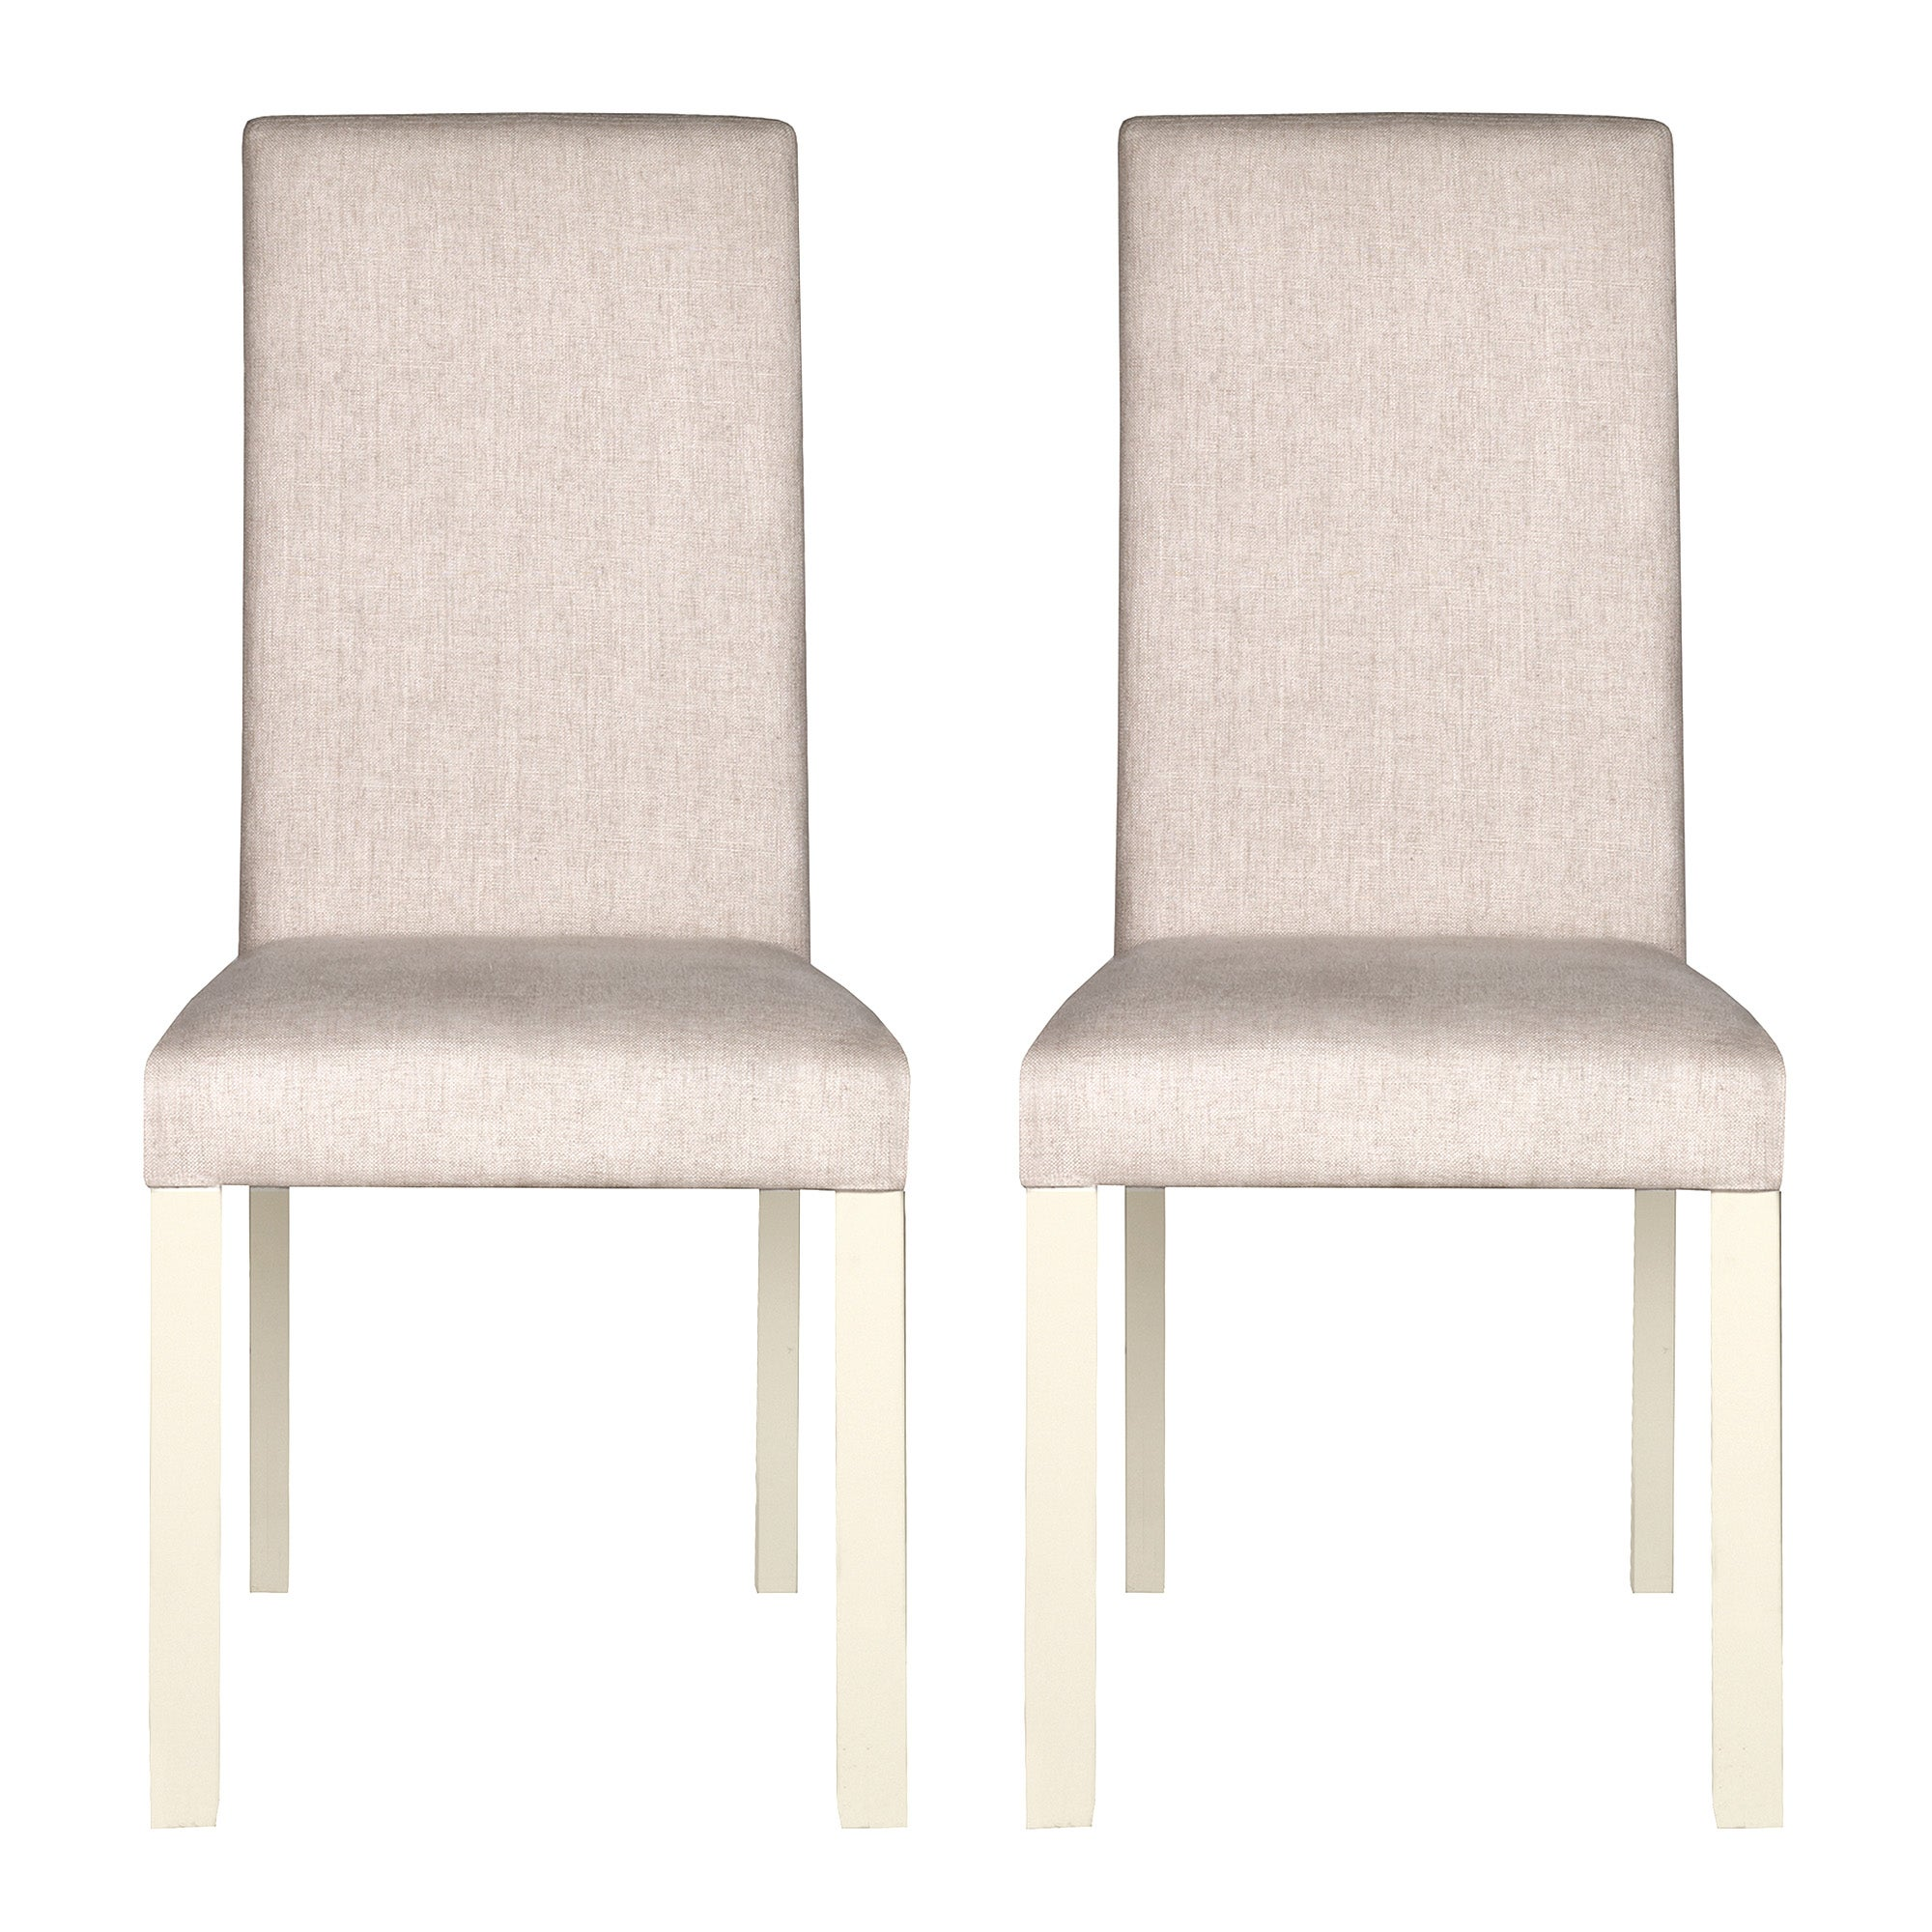 Penzance Oak Two Tone Pair of Upholstered Chairs